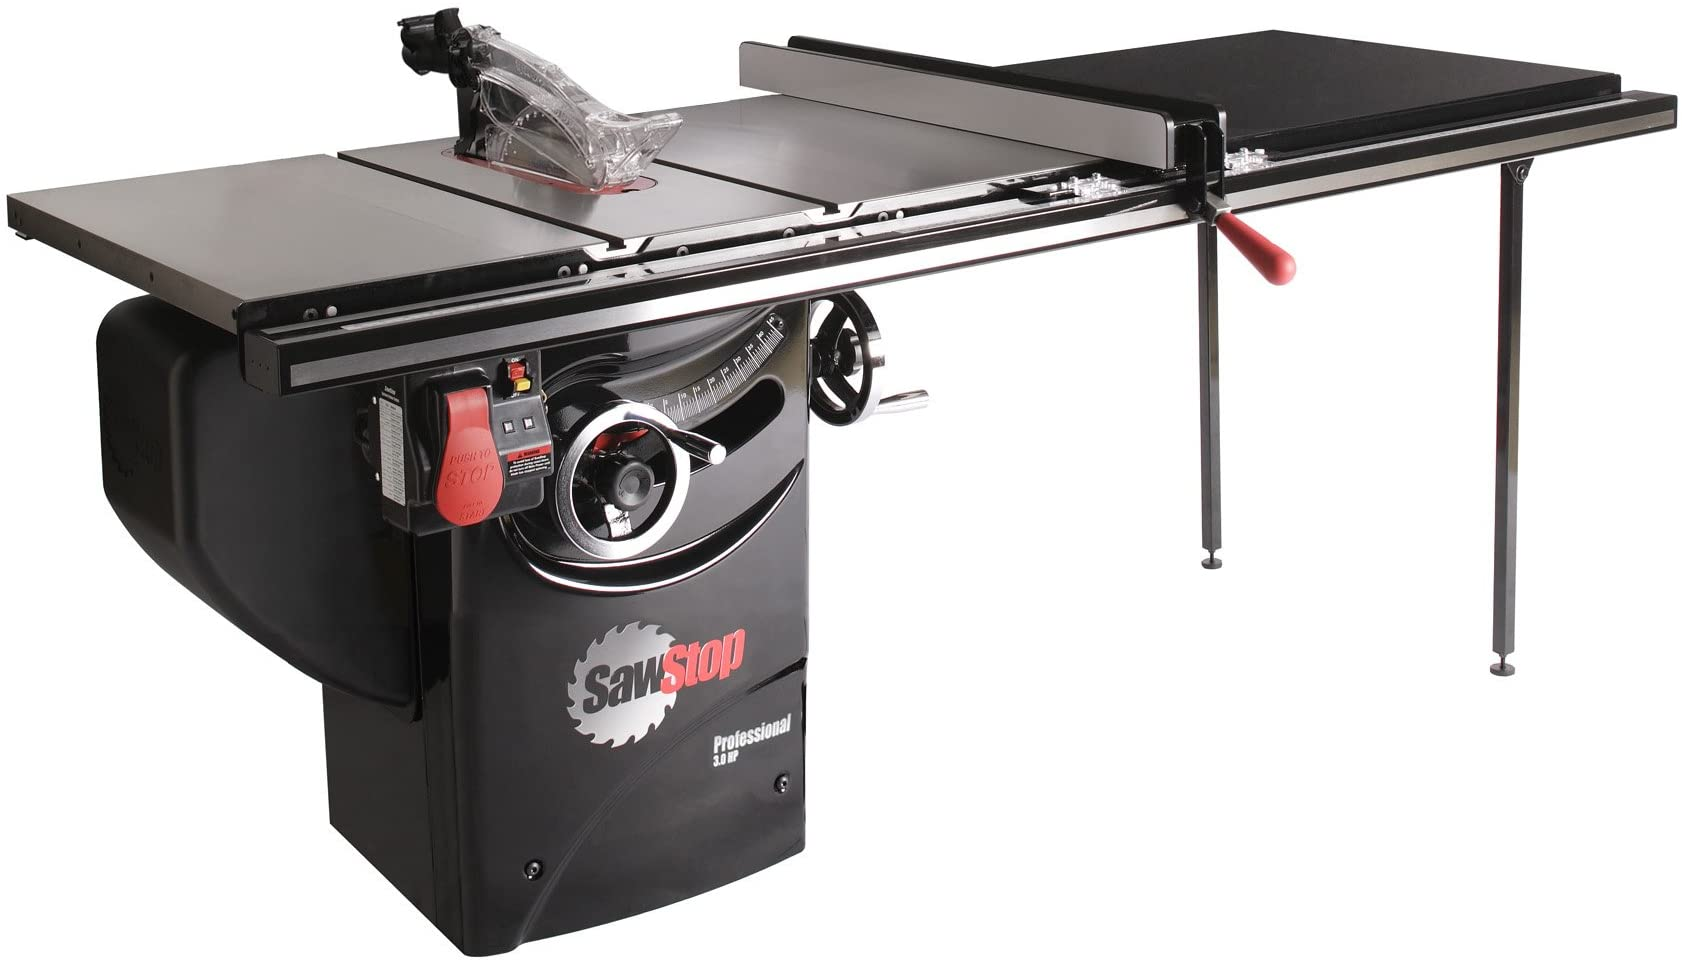 SawStop 10-Inch Professional Cabinet Saw, 3-HP, 52-Inch Professional TGlide  Fence System (PCS31230-TGP252) - Power Table Saws - Amazon.comAmazon.com